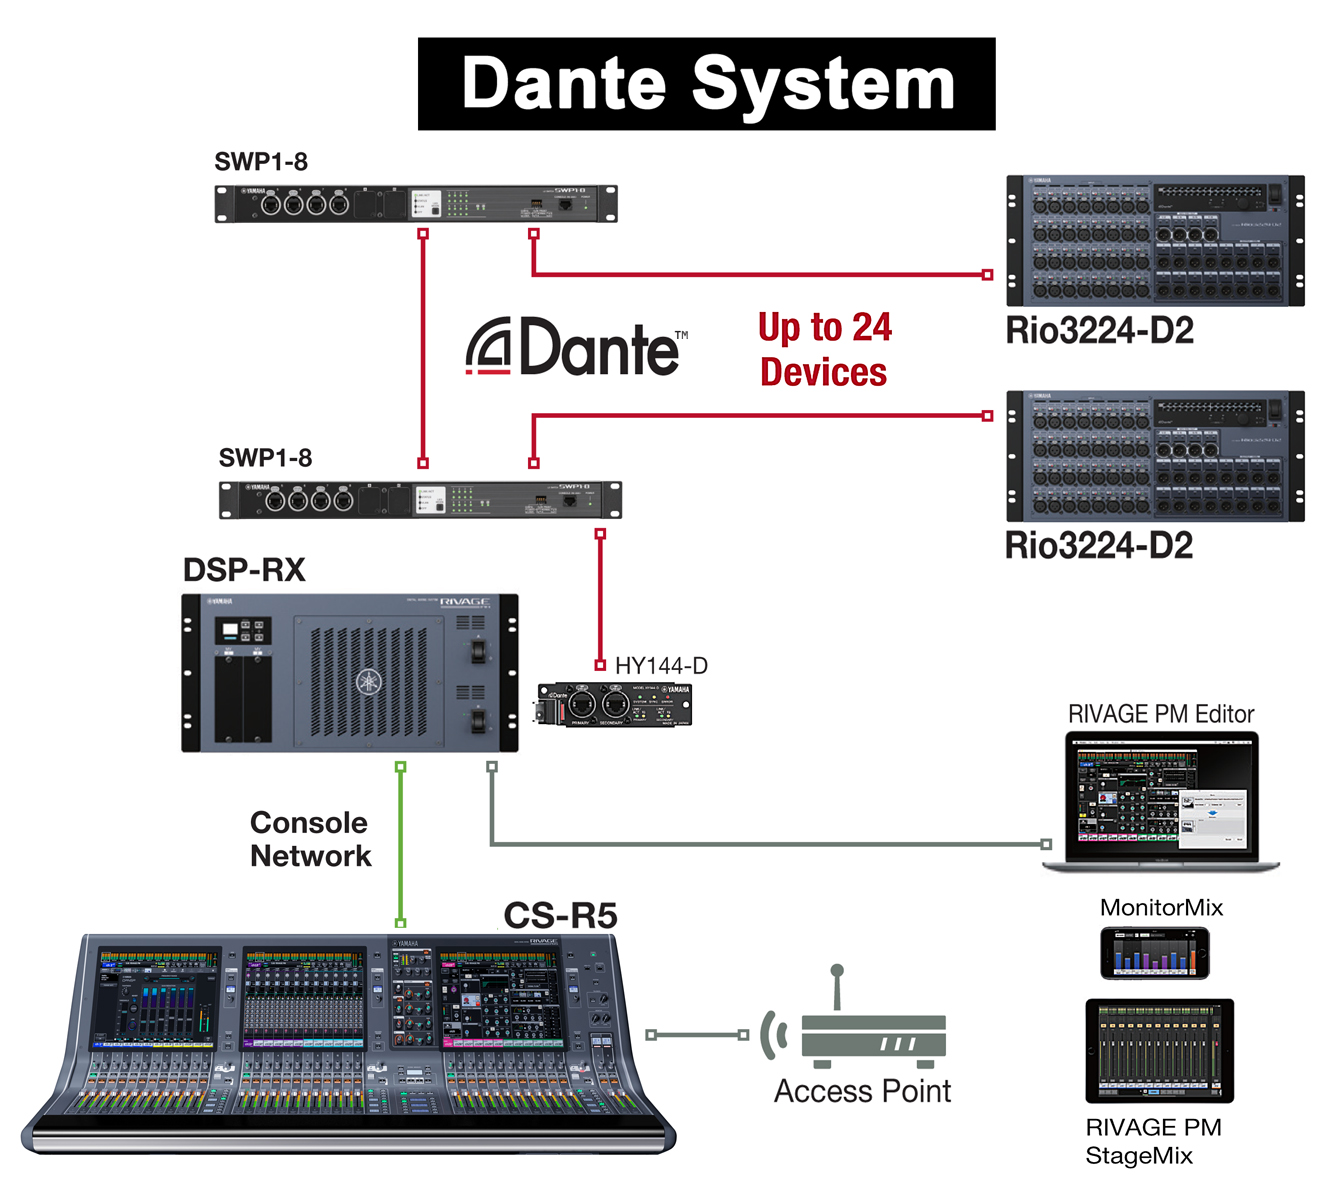 One possible RIVAGE scenario (among many) shows a CS-R5 controller in a Dante configuration with a DSP-RX engine fed from two Rio3224D2 stageboxes and interfaced with a Mac running the RIVAGE PM Eitor and a smartphone running Monitormix and an iPad running RIVAGE PM StageMix for wireless mix control.